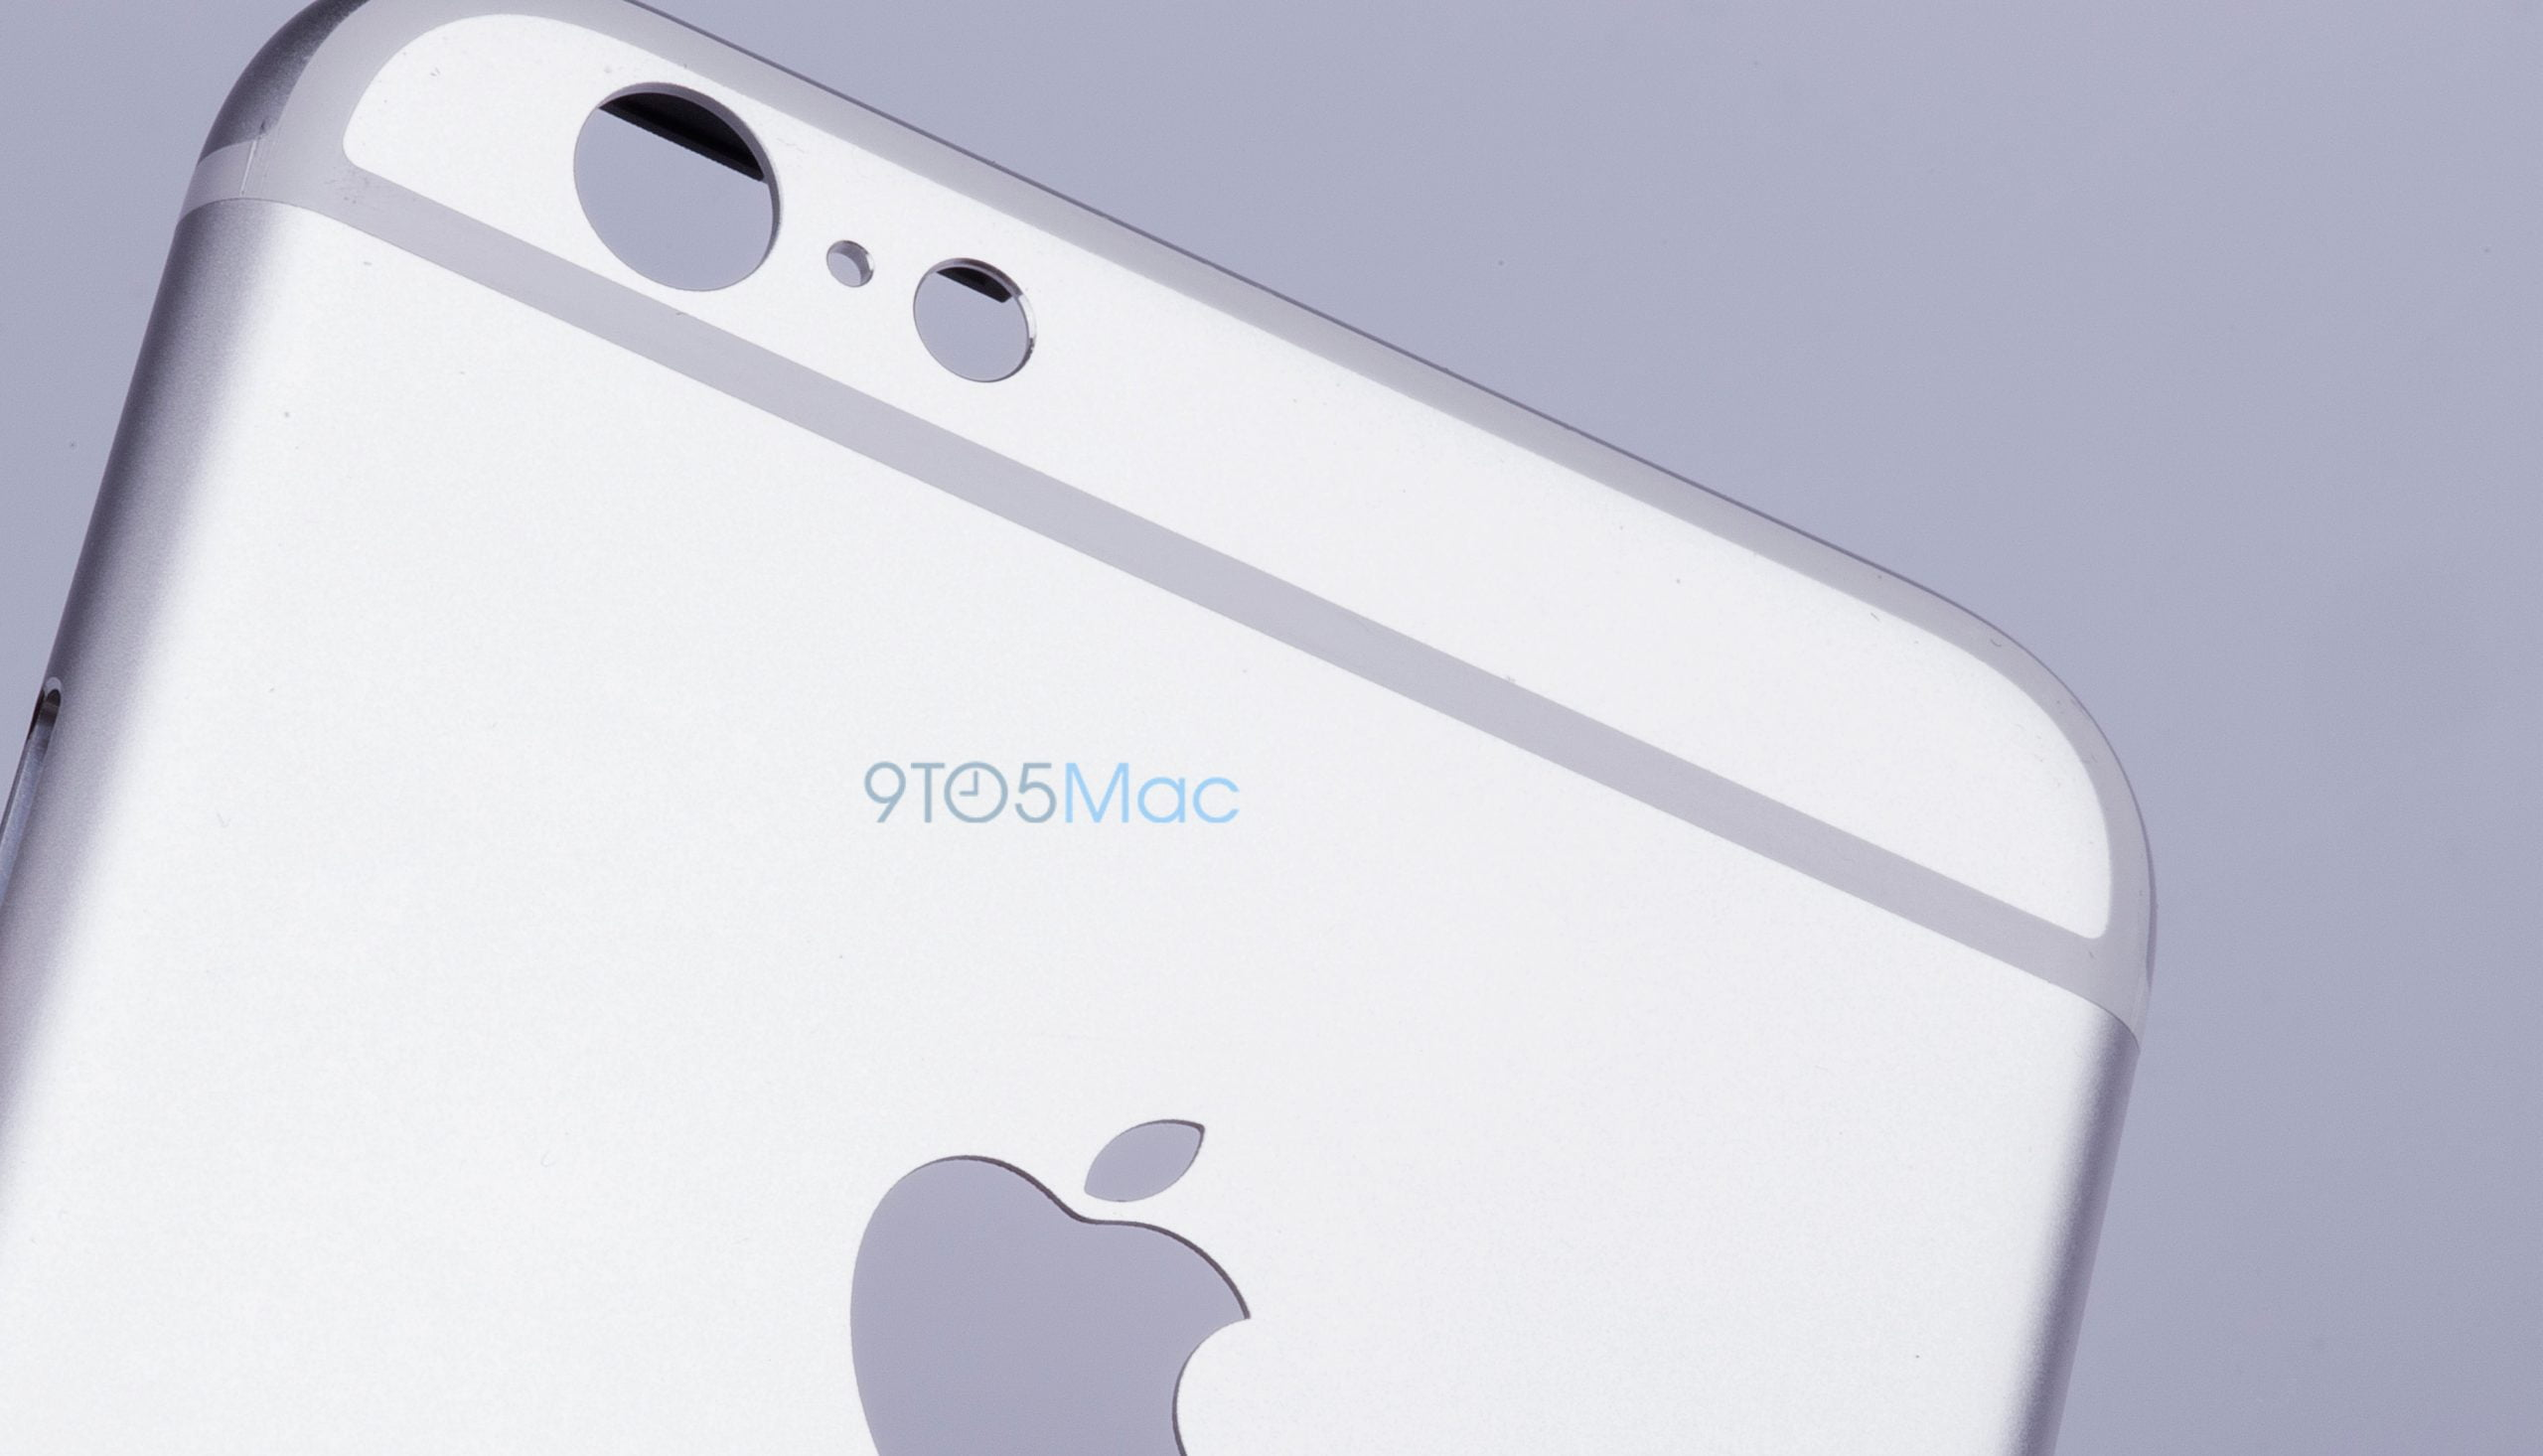 The next iPhone could mount a 12 megapixel rear camera